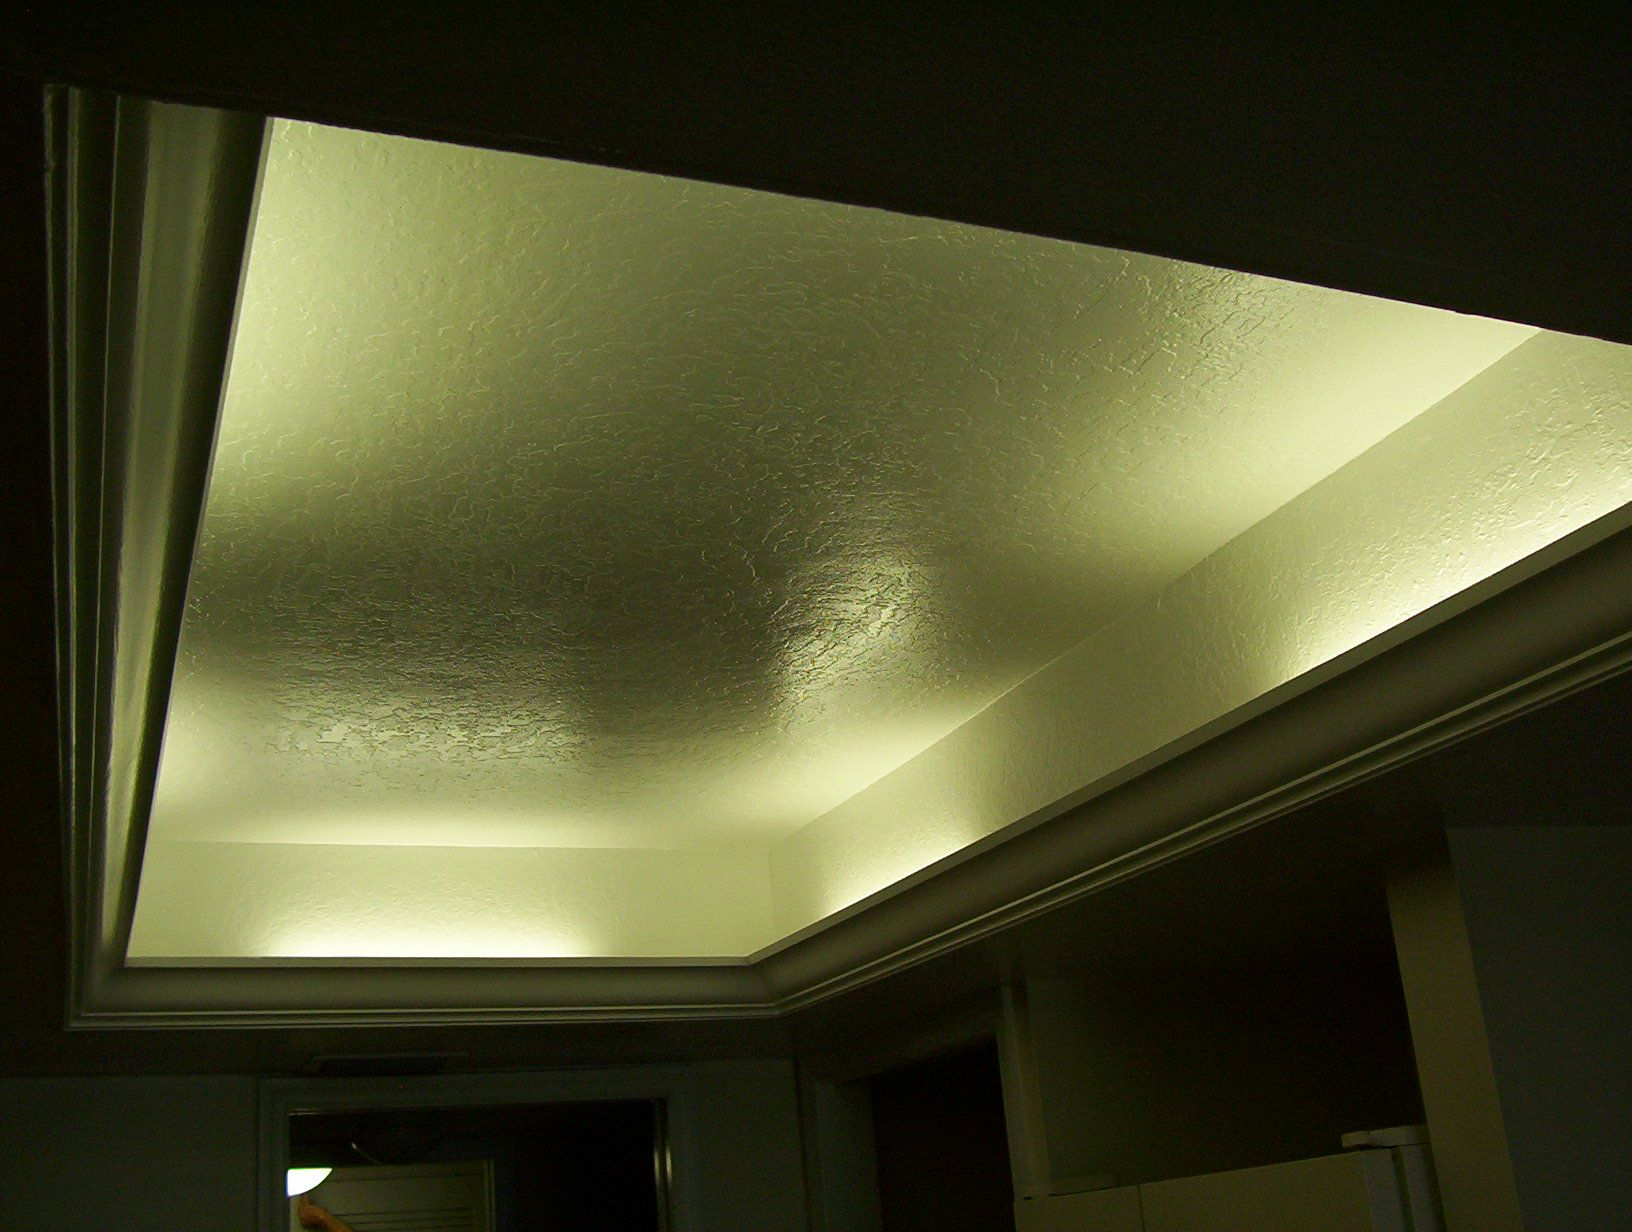 Kitchen Lighting With Old Drop Ceiling Take Out Grid And & Drop In Lights For Drop Ceilings - Ceiling Designs azcodes.com